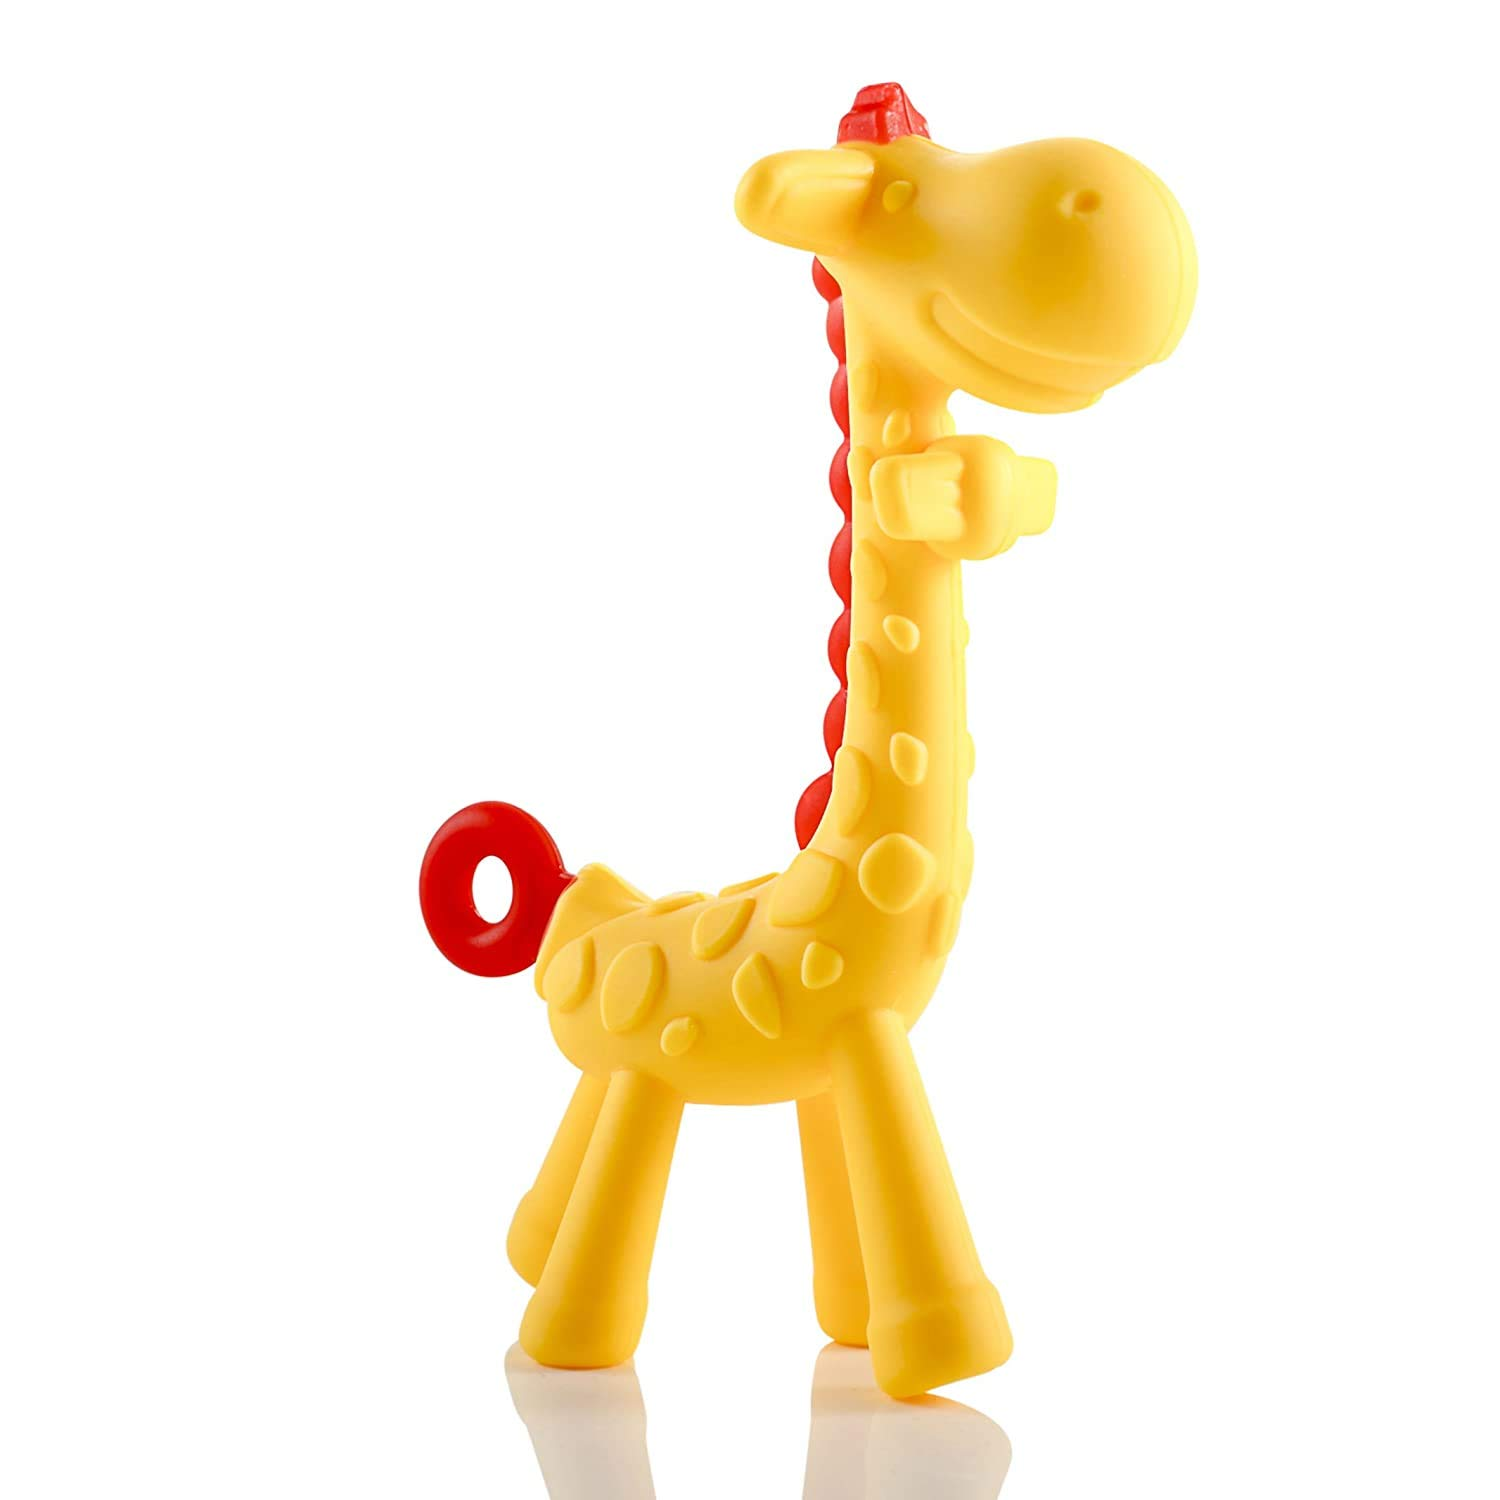 Girls Toddlers Freezable and Dishwasher-Safe Babies Newborn Infant Teething Relief Giraffe Baby Teether Toy Natural /& Organic BPA-Free Silicone Cute Chew Toys for Boys Yellow MAD